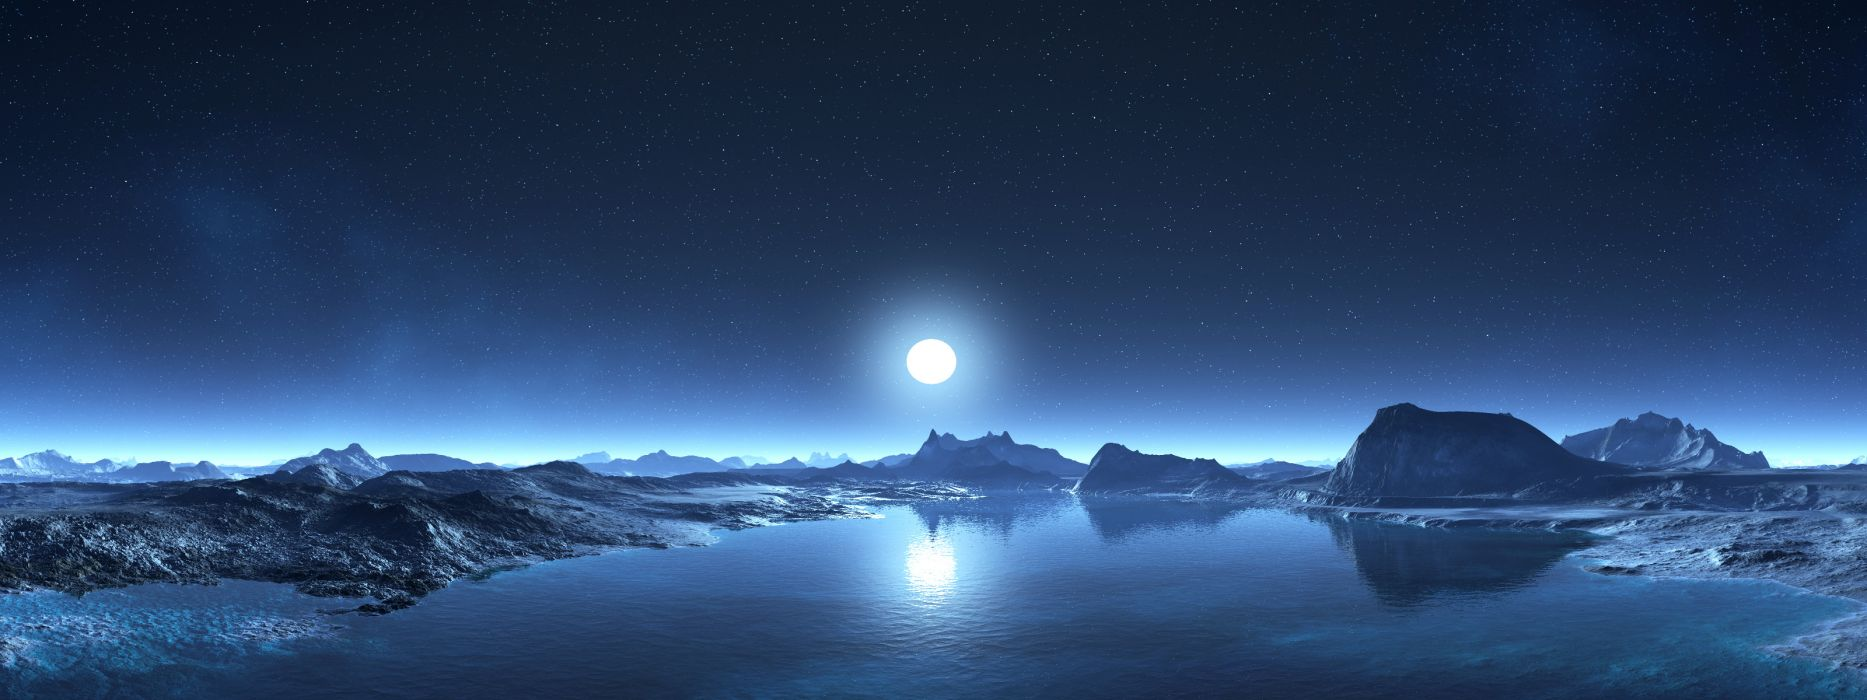 Multi Monitor Dual Screen sci fi landscapes 3d cg digital art lakes mountains sky stars moon night wallpaper